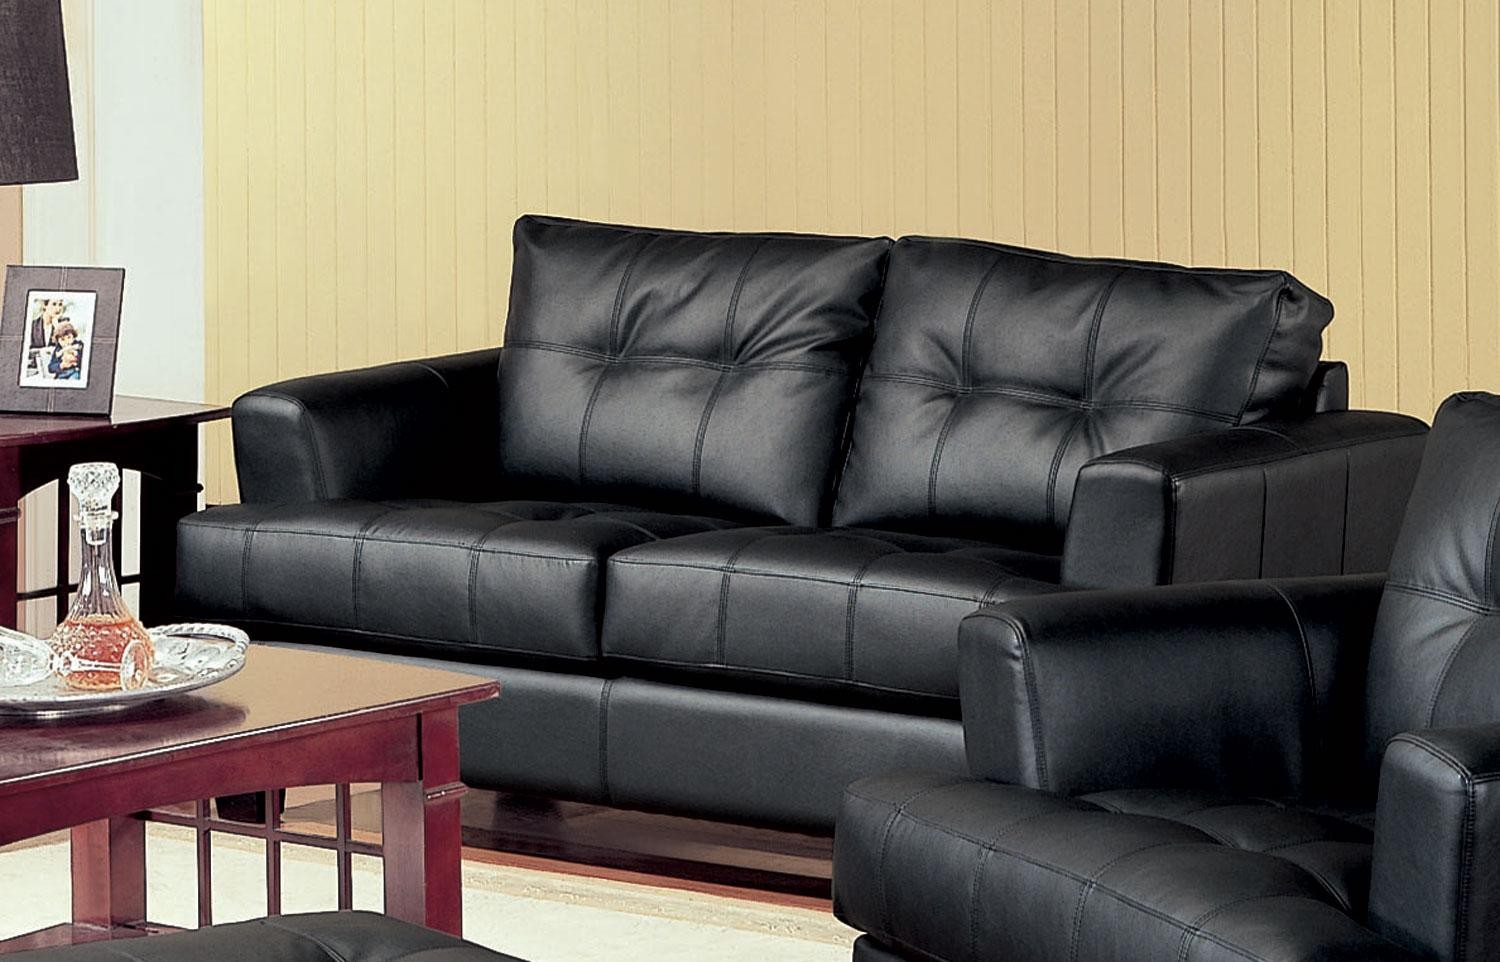 amazon sofa set 5 seater disney minnie mouse upholstered samuel black leather loveseat 501682 from coaster